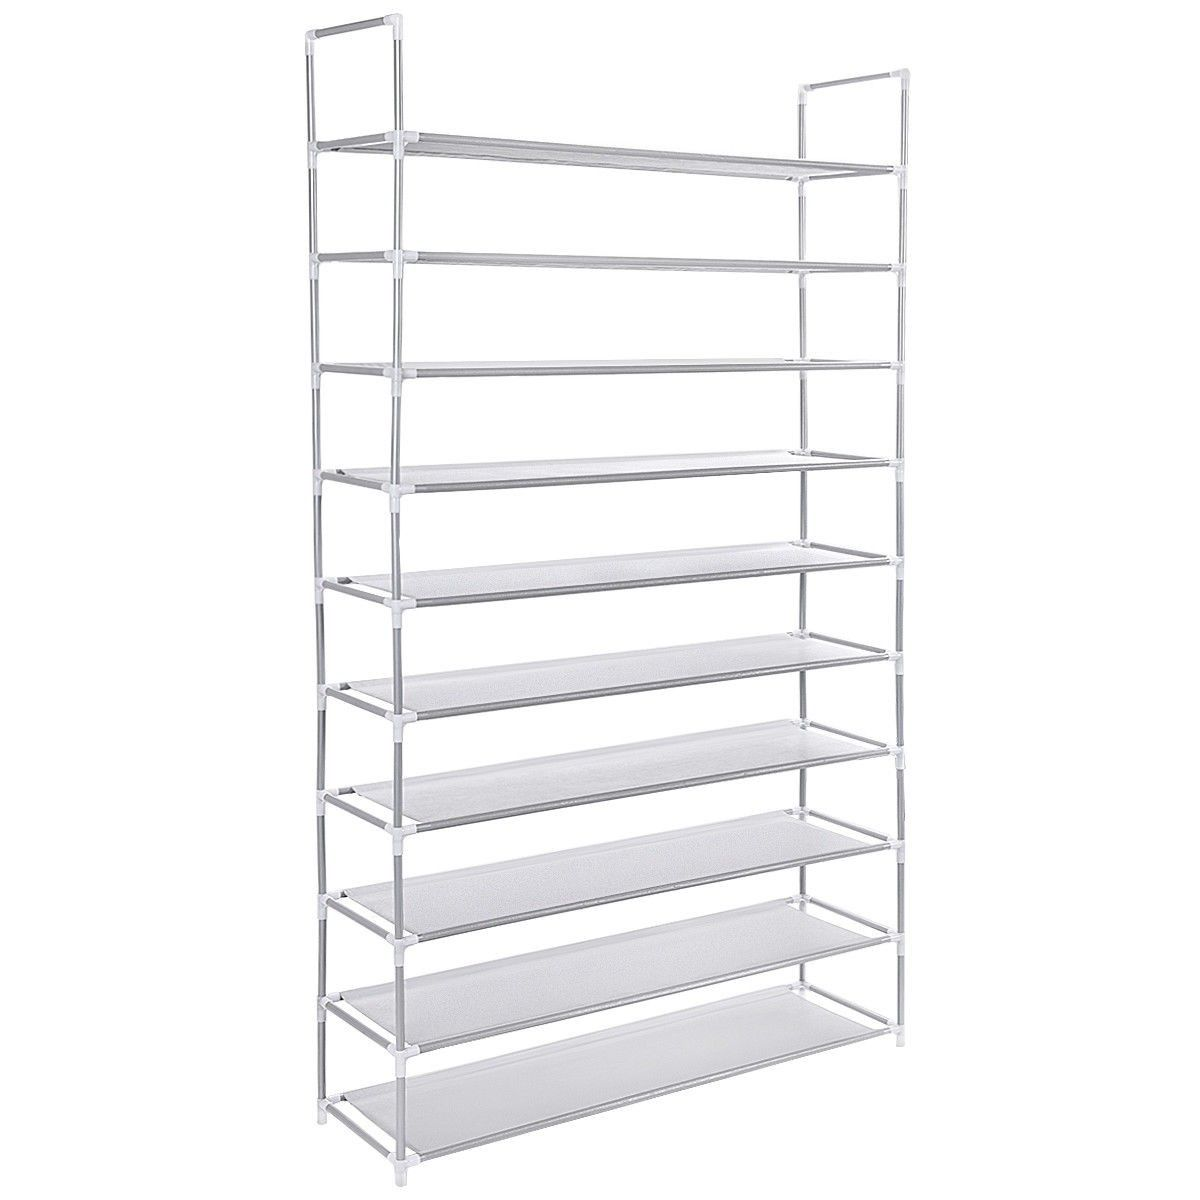 50 Pair 10 Tiers Shoe Rack Shelf Storage Organizer 24 95 Free Shipping The Non Slip Shelves Which Are Fully Adjust Shoe Rack With Shelf Rack Shelf Shoe Rack